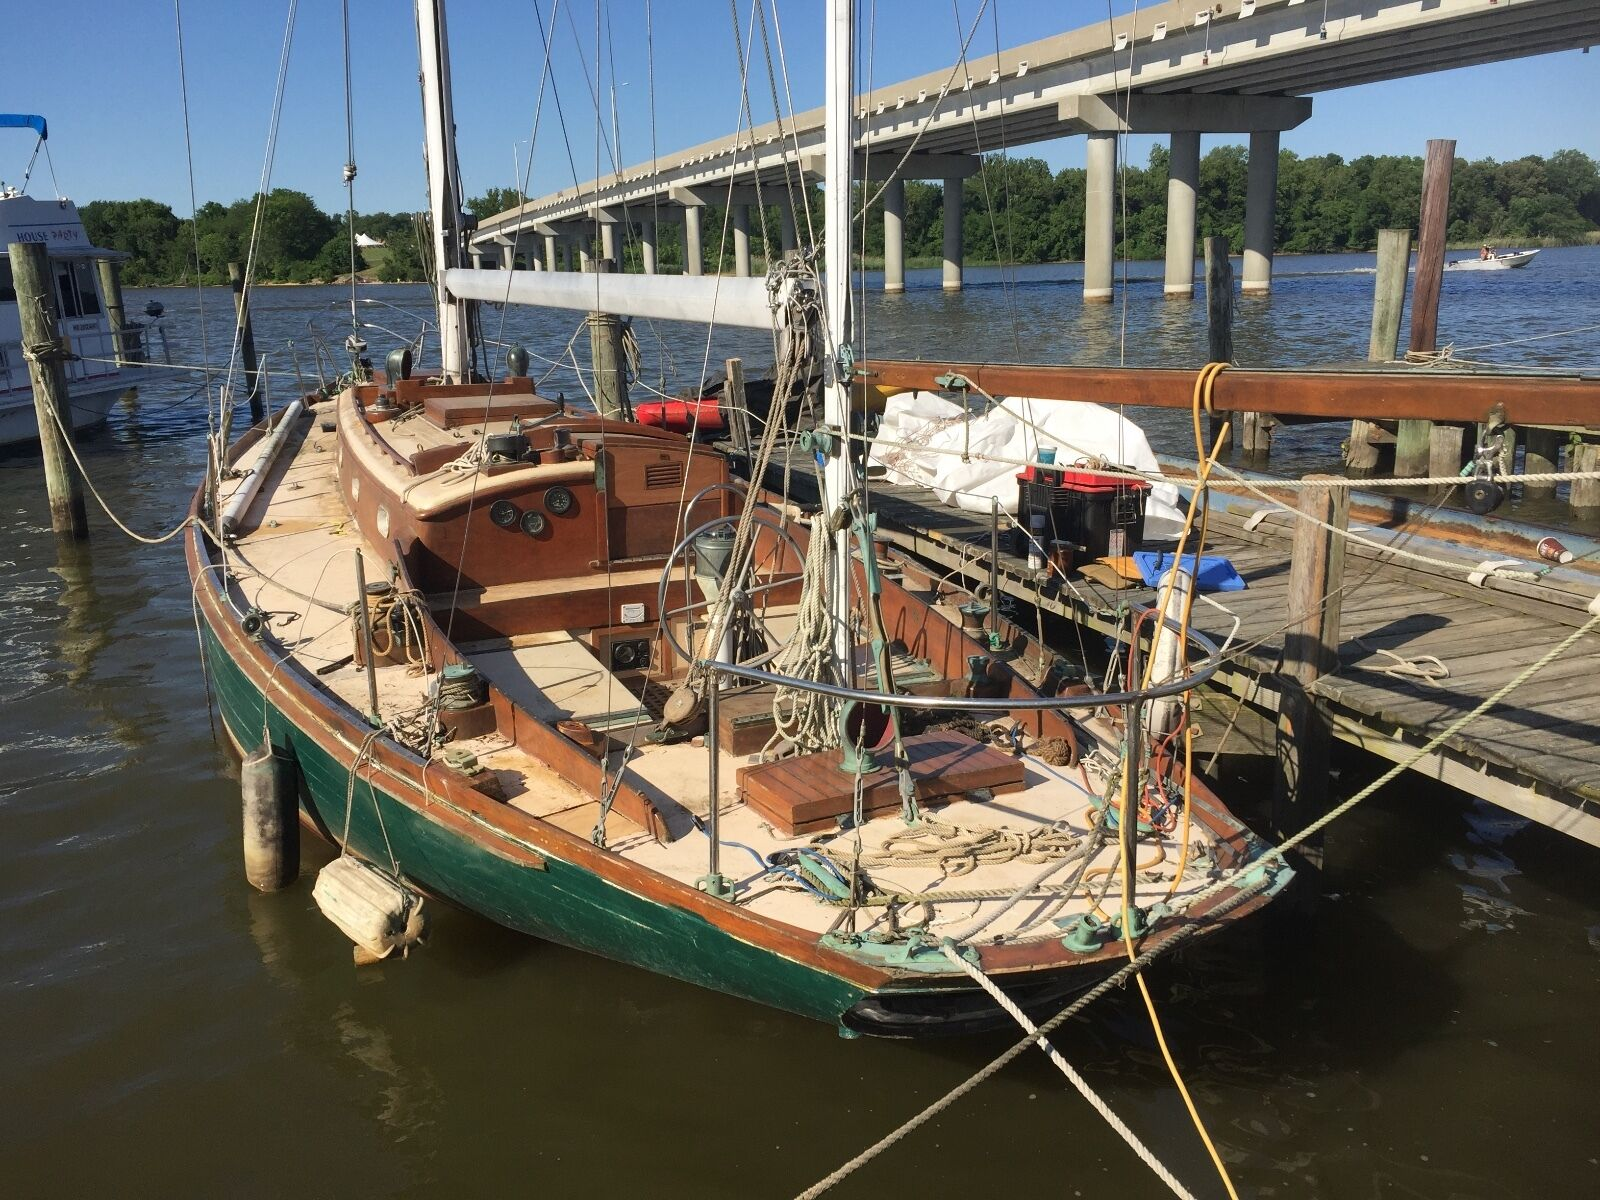 1961 Little Harbor Auxiliary Yawl Sailboat, Earleville MD   No Fees & No Reserve